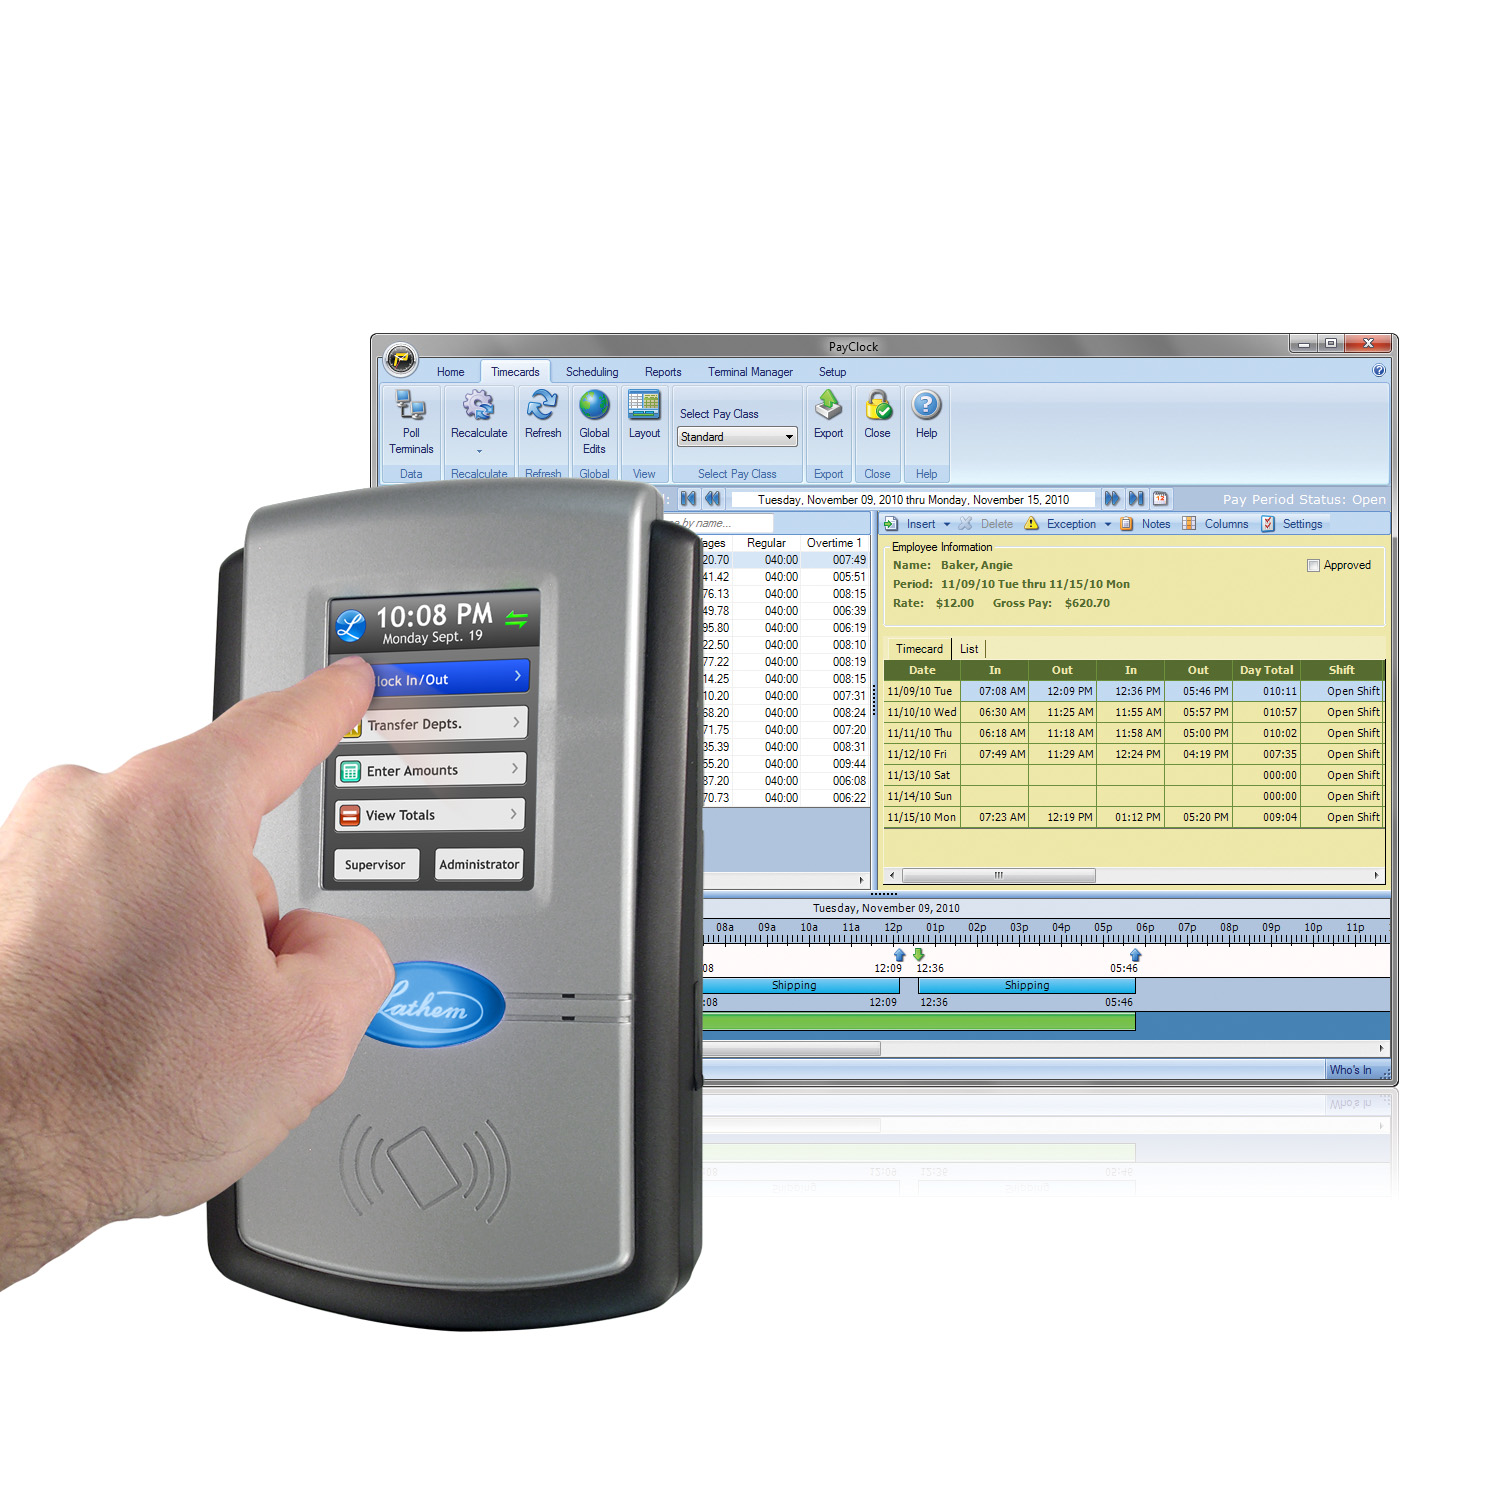 Lathem Launches PC600 Touch Screen Time and Attendance System